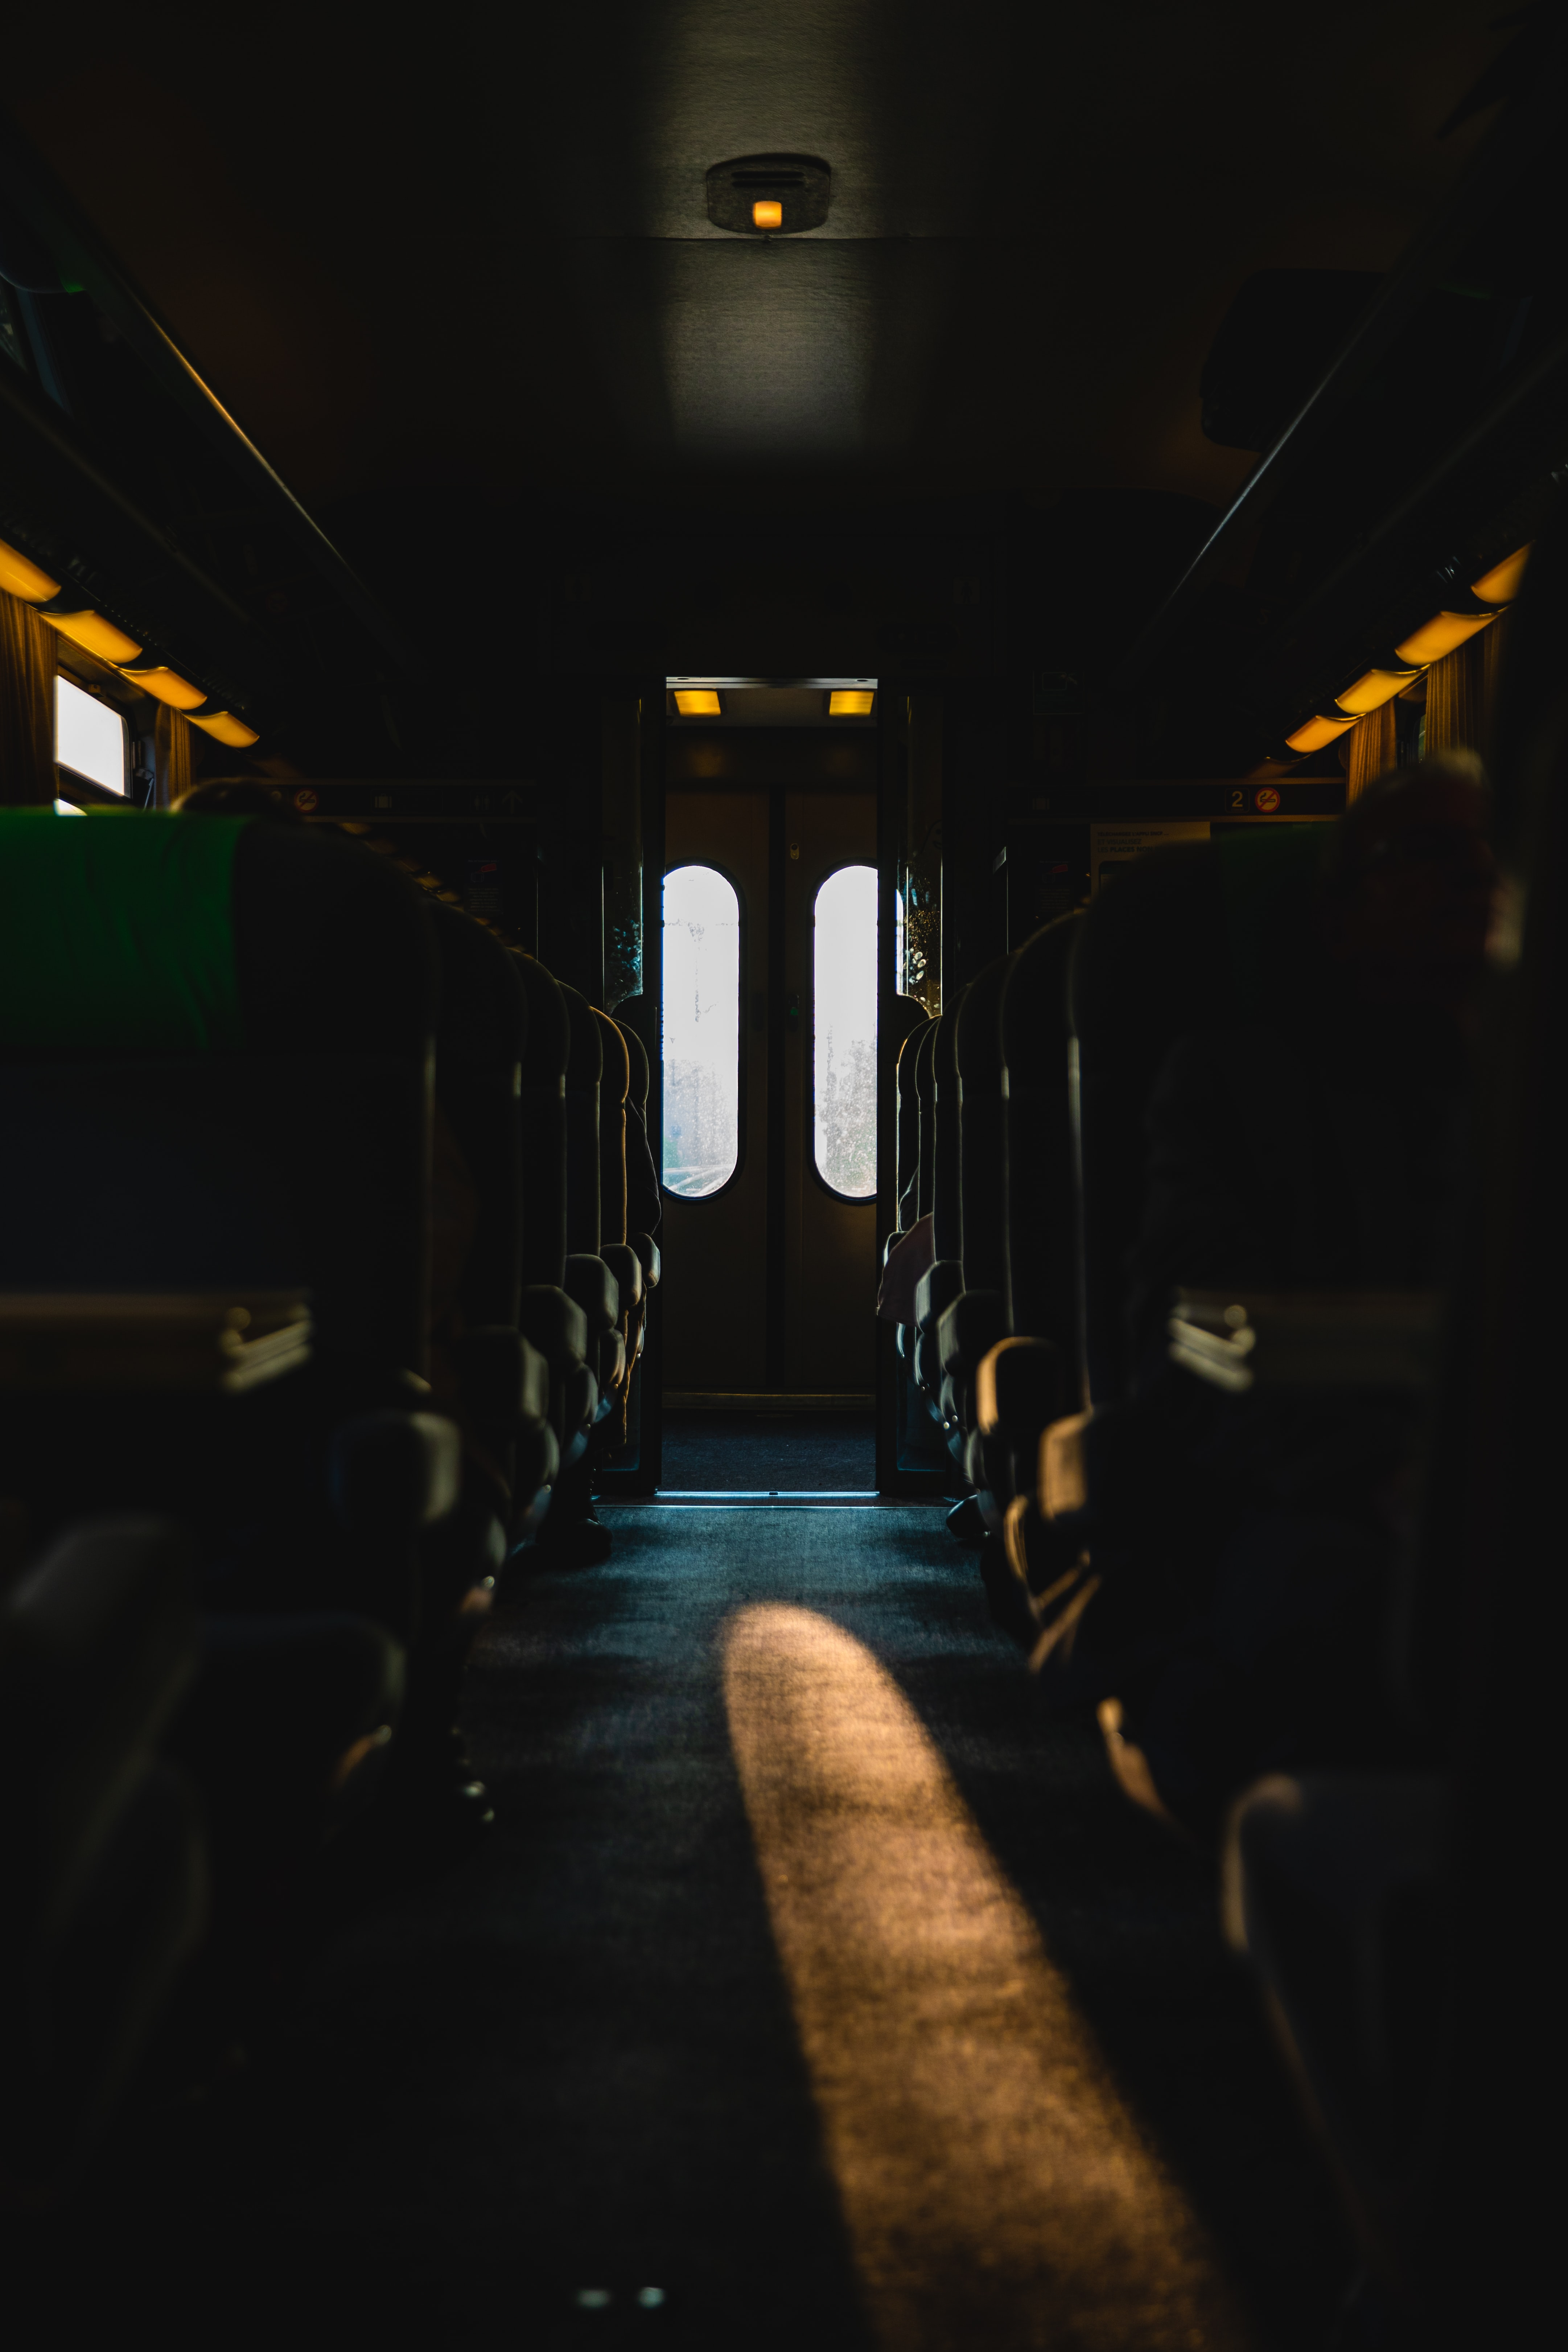 brown and gray bus interior